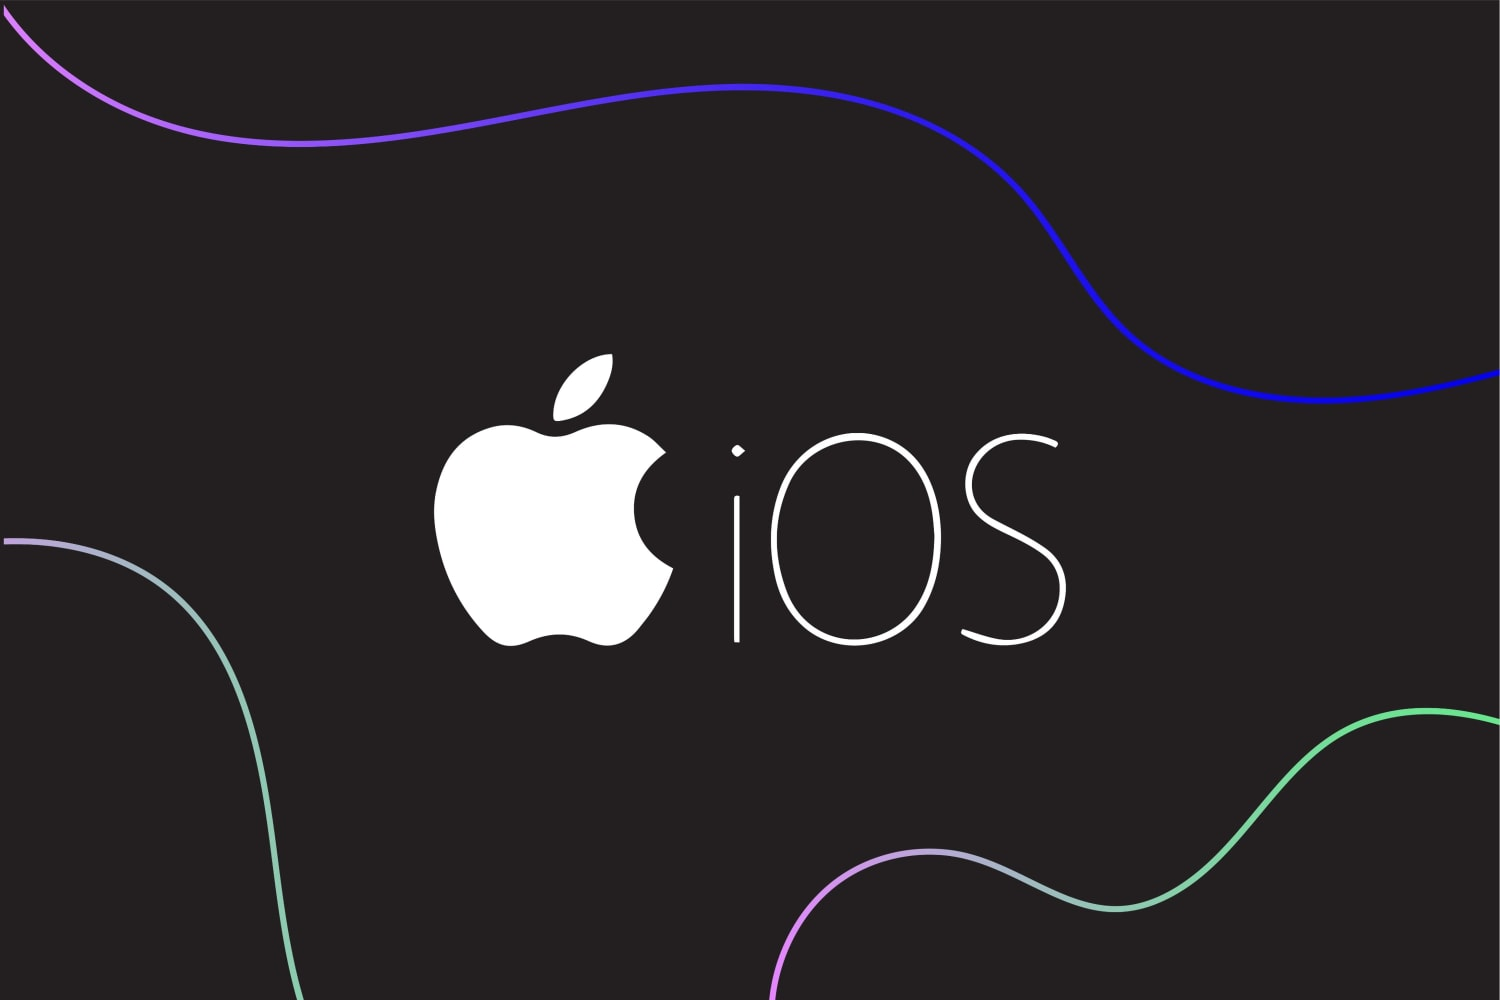 new-ios-14-beta-6-features-picture-in-picture-mode-spatial-audio-settings-and-more-20200901-1